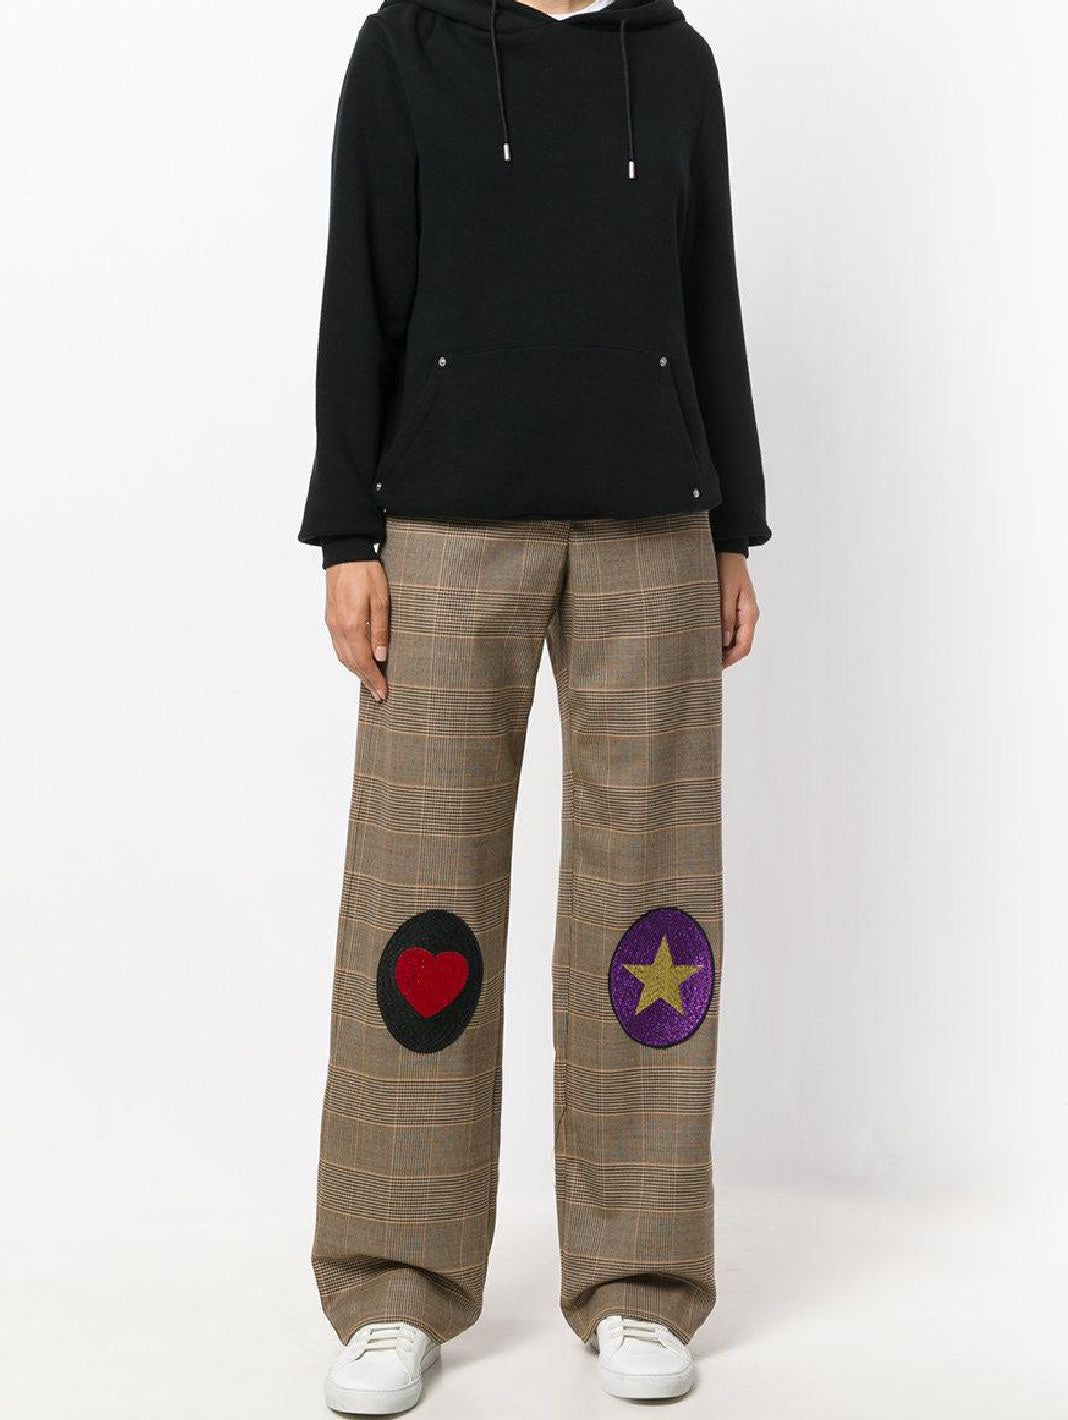 Prince of Wales Patch Wool Trousers - The Bobby Boga